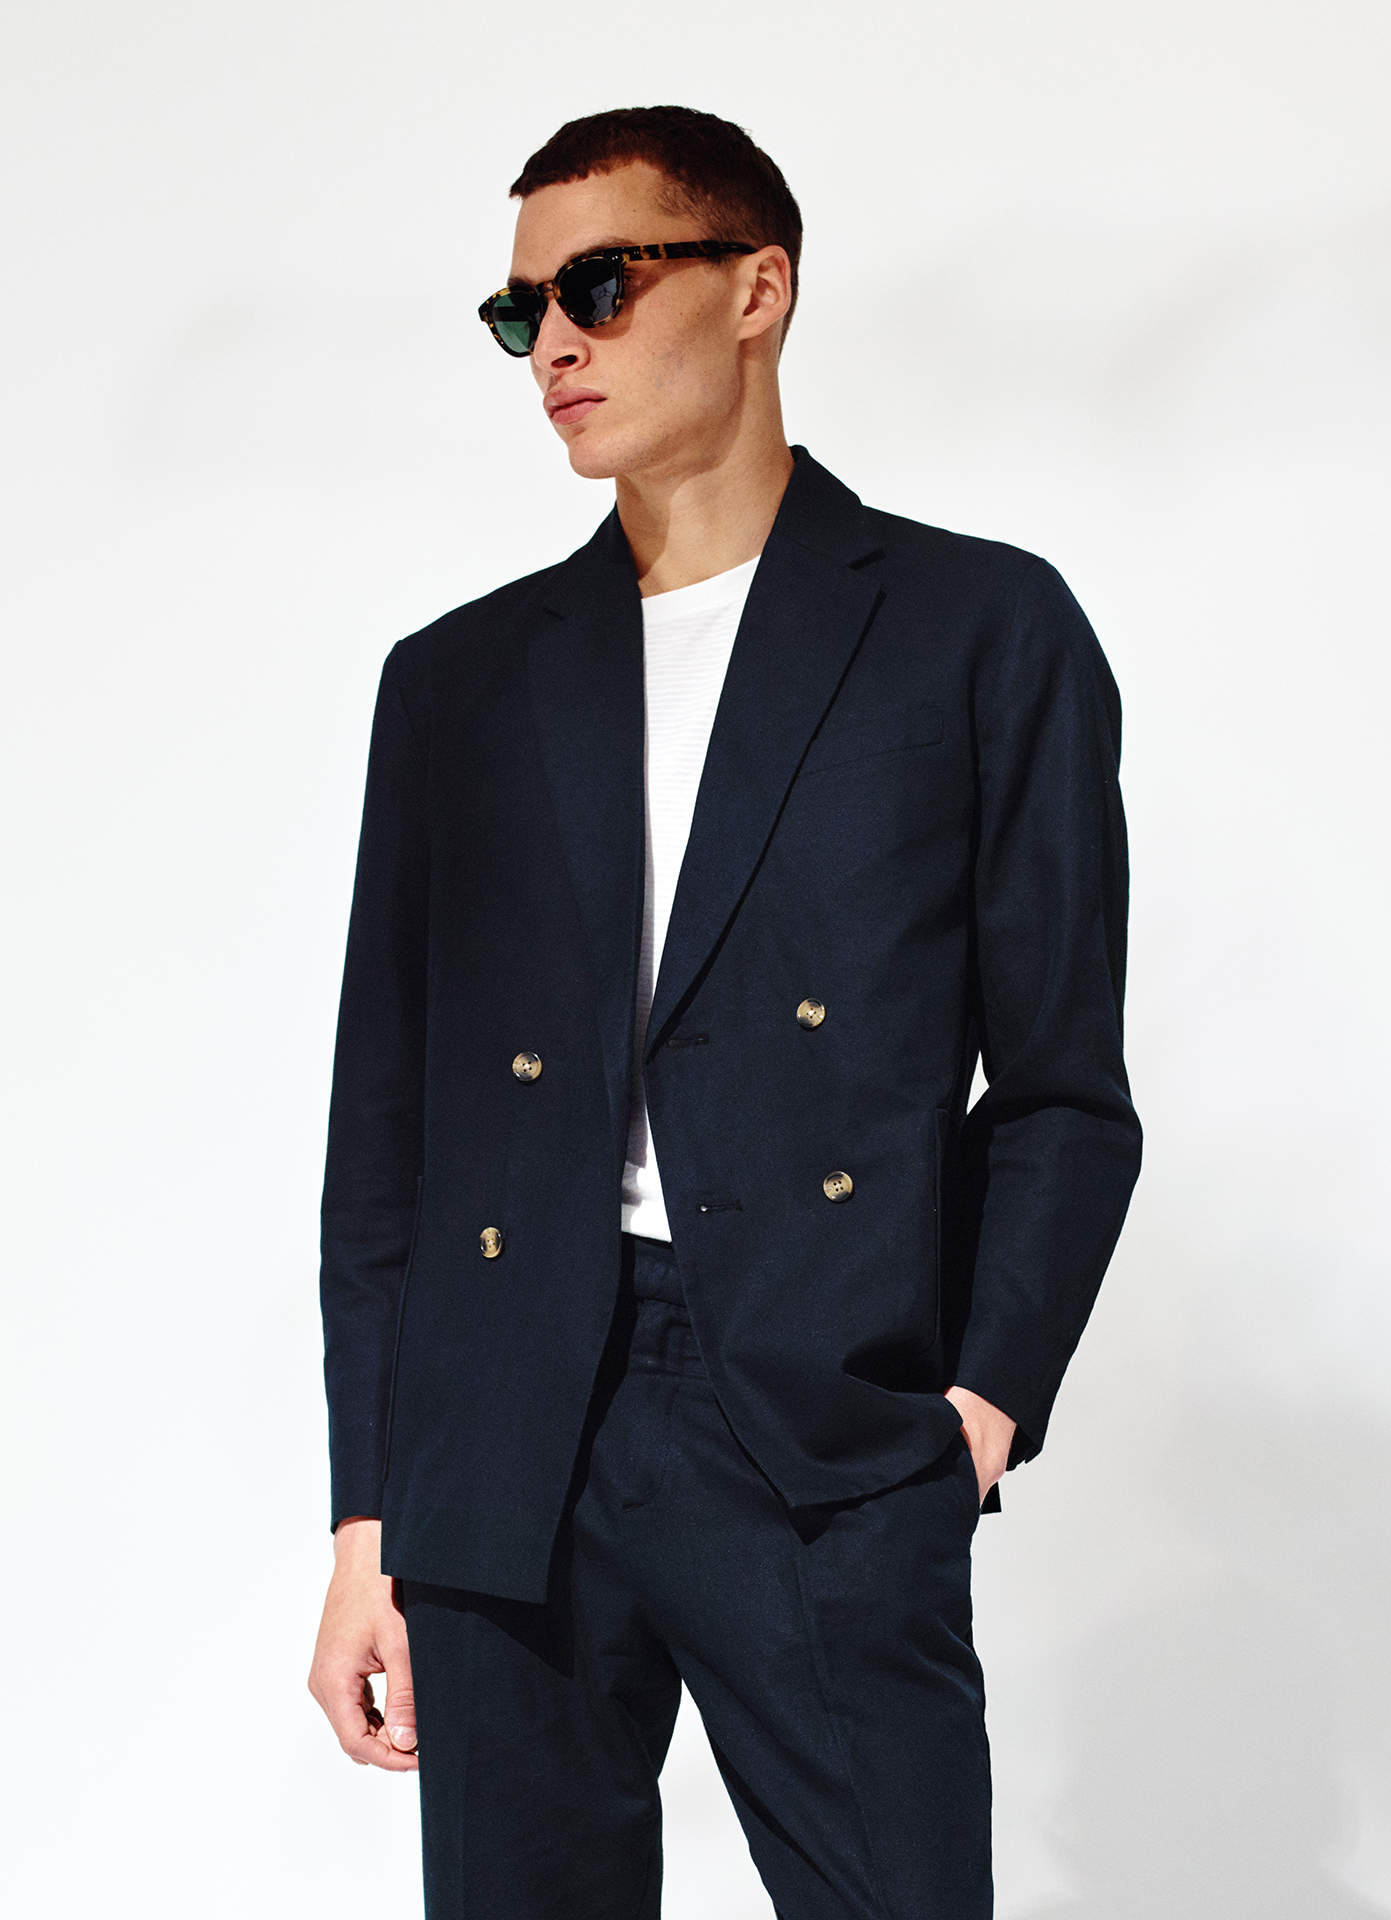 A photo of a model wearing brian blazer